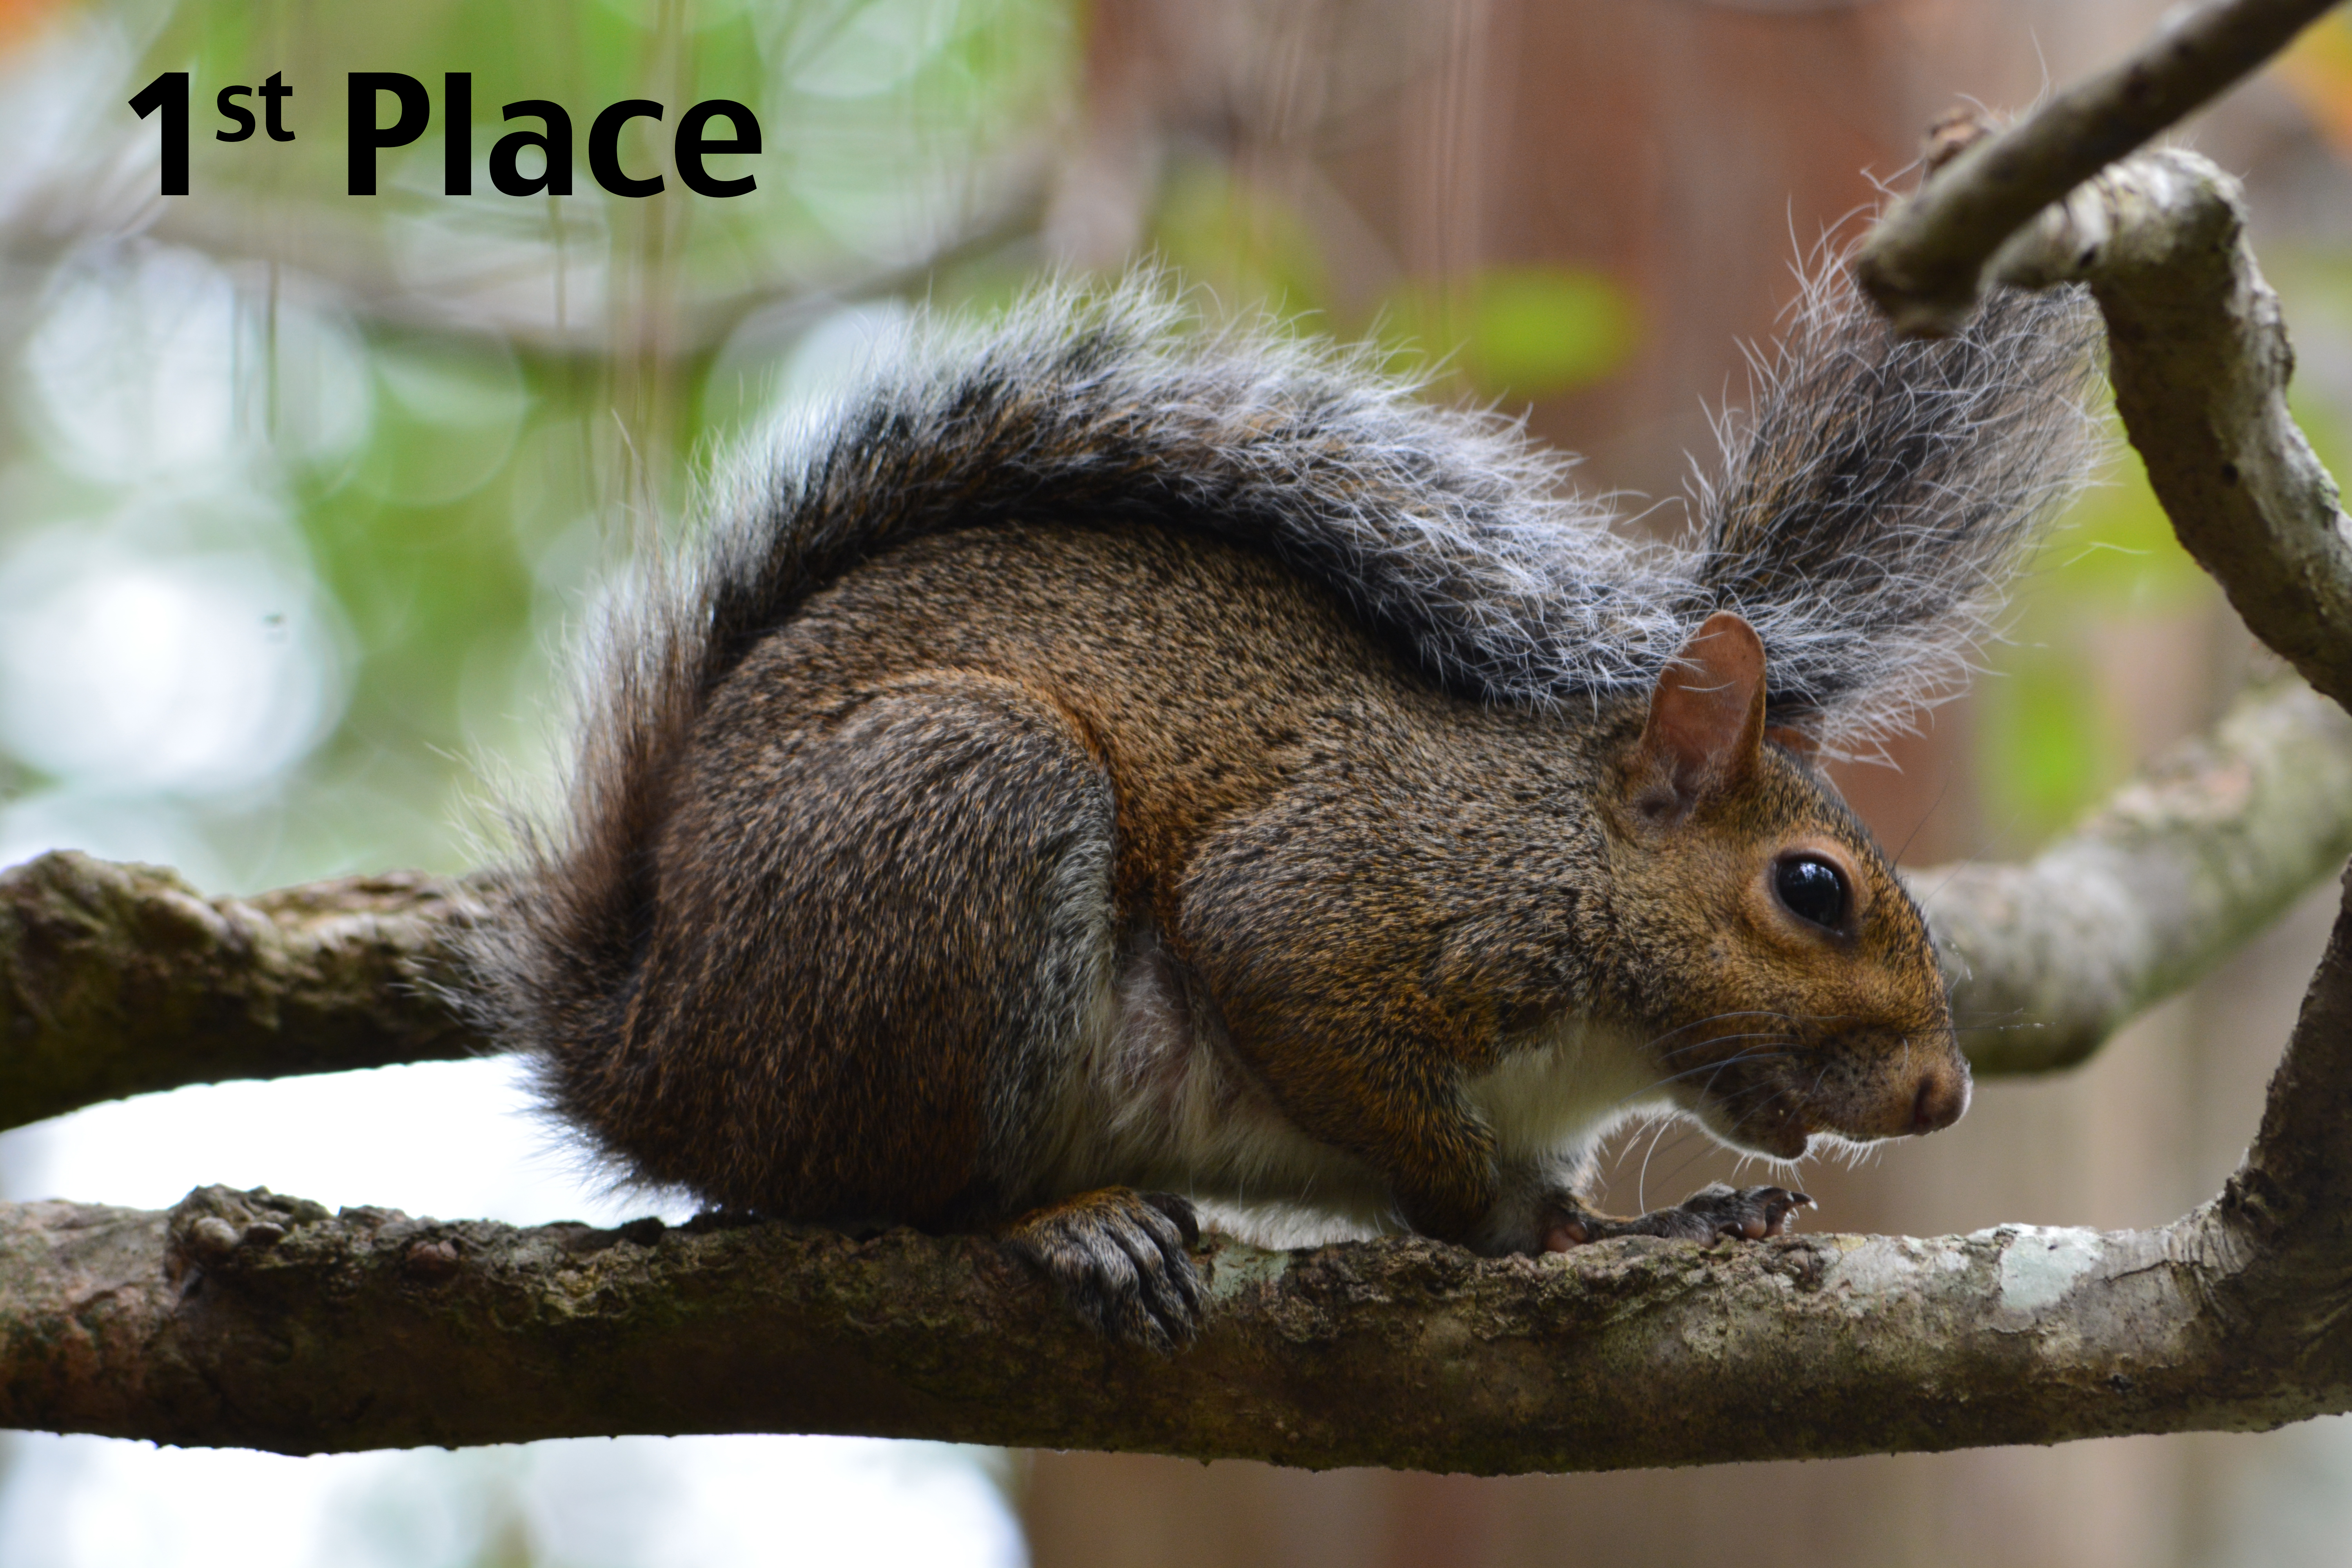 First place photo, a squirrel on a tree branch